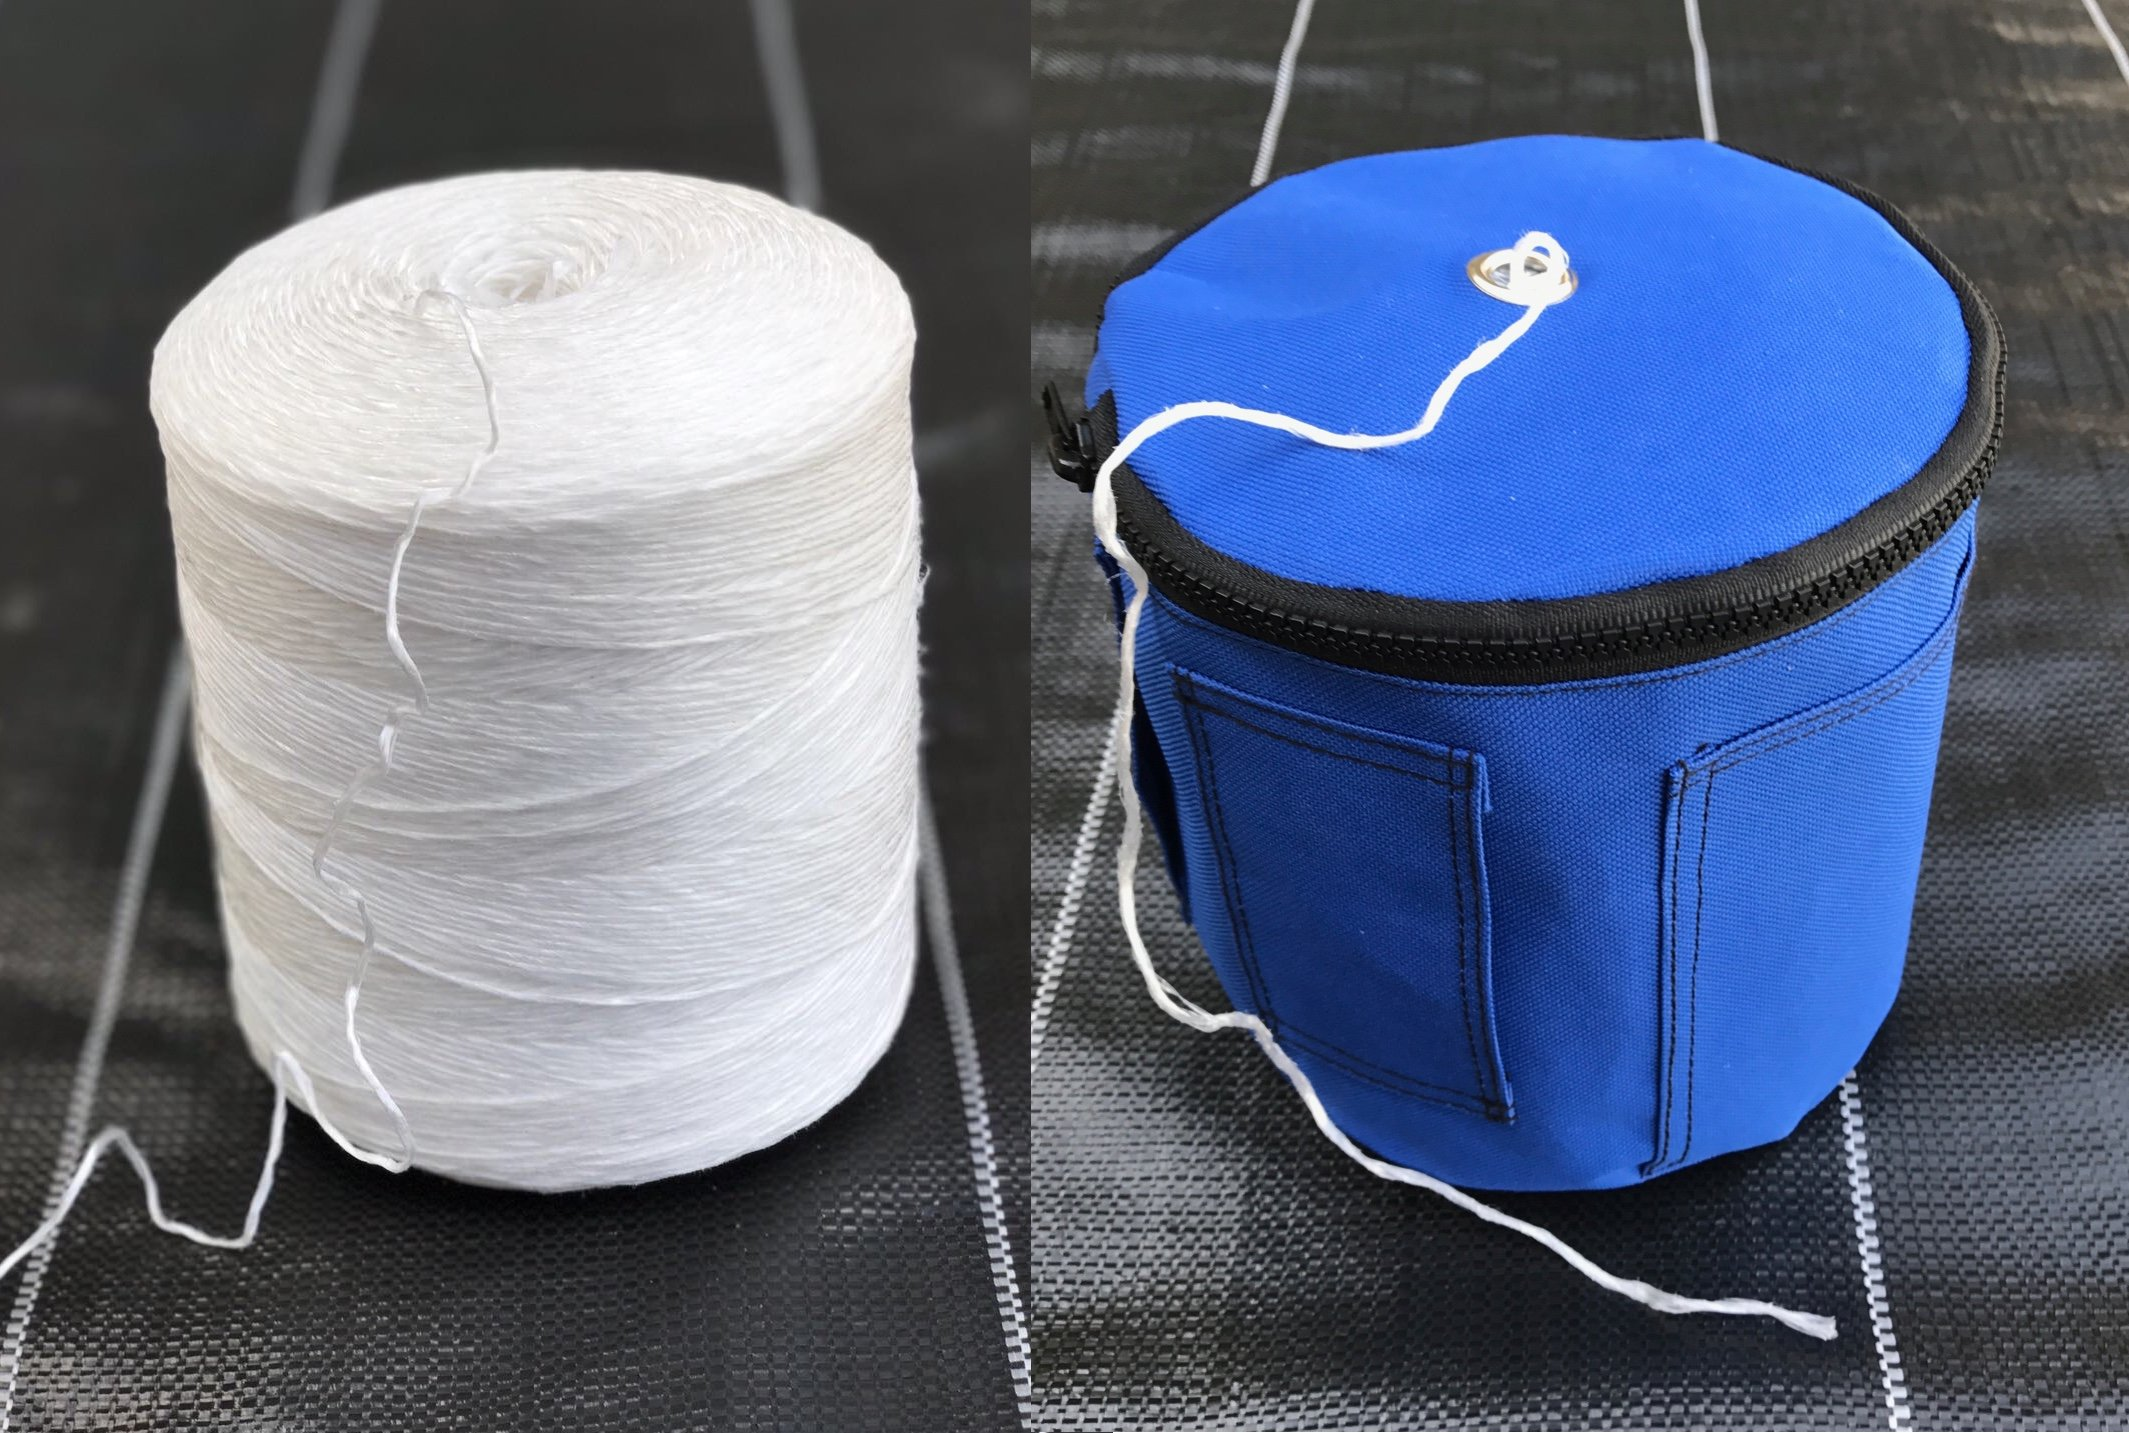 Bundle: 6300 ft Polypropylene Tomato Twine + Reusable Twine Dispenser Bag for Garden Twine String (2 Rolls Twine + 1 Blue Twine Bag) by Bluefire Direct